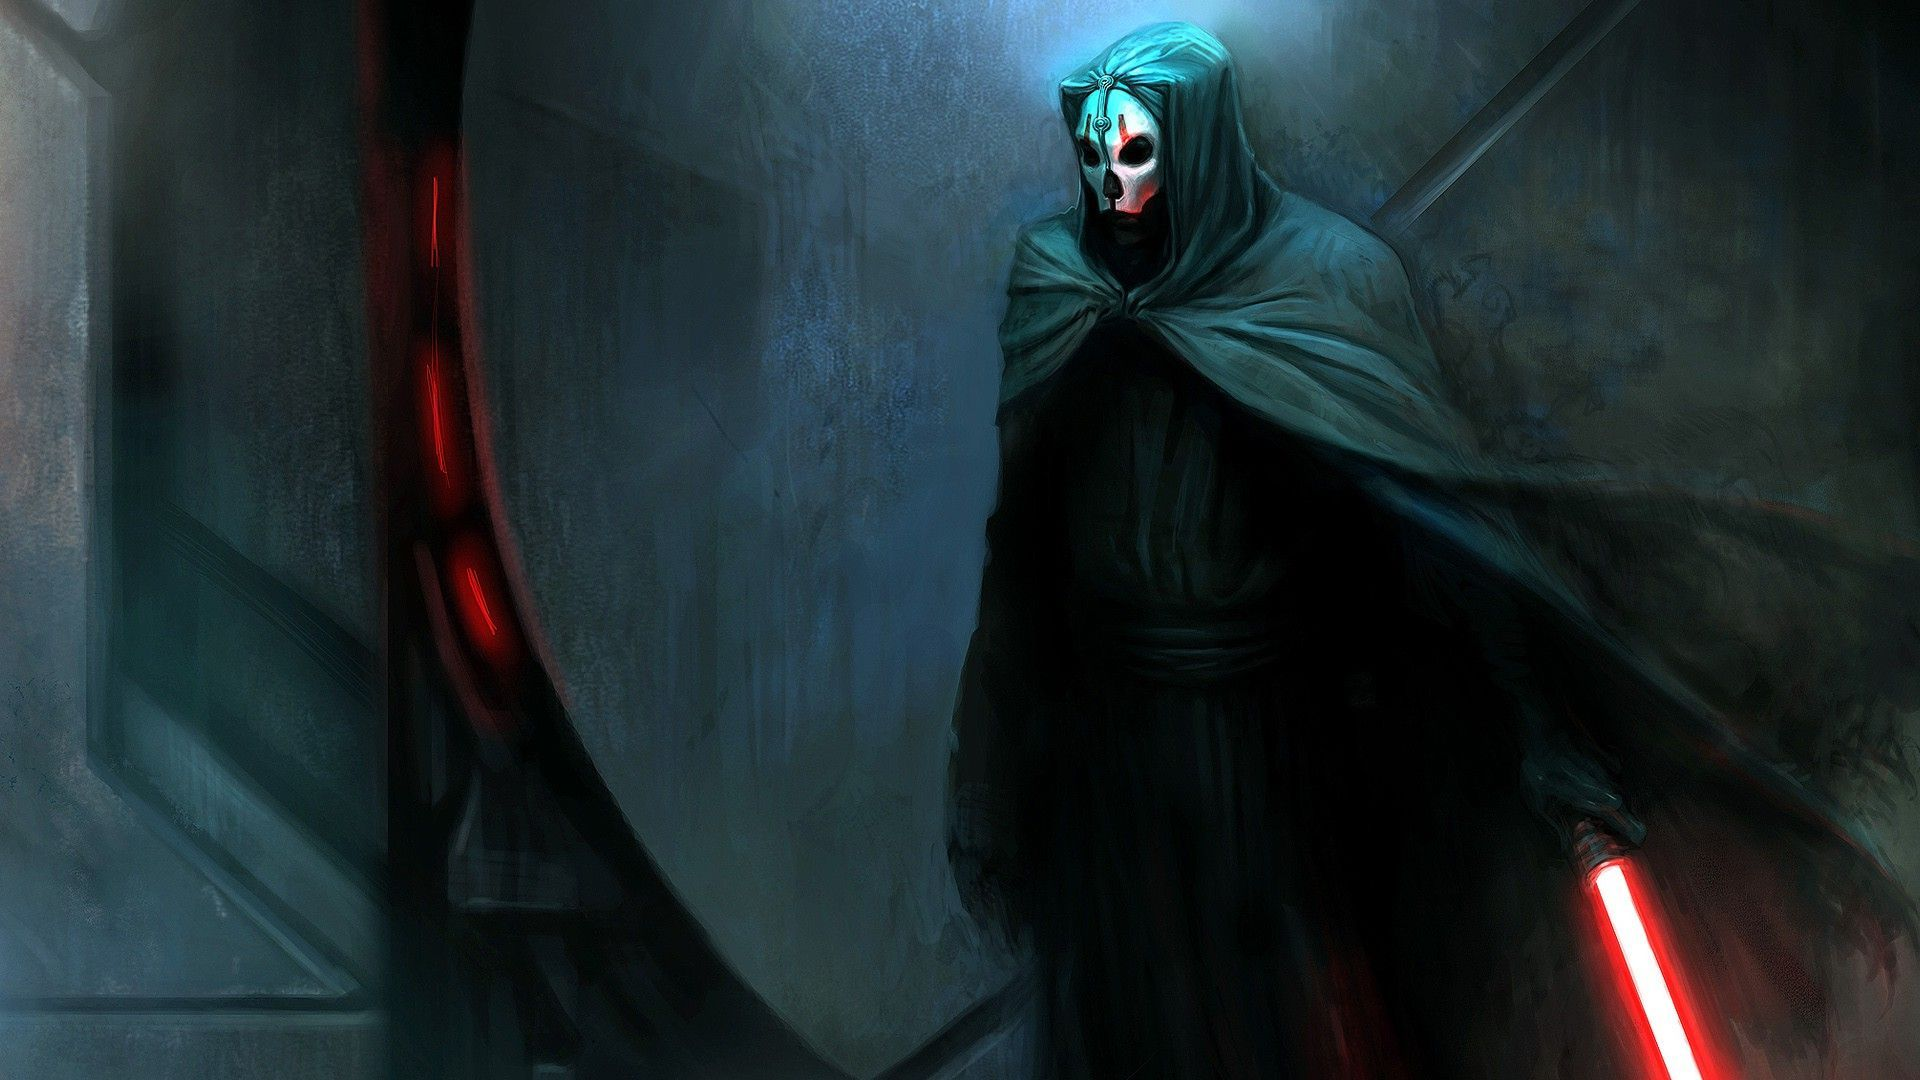 Darth Nihilus Wallpapers Top Free Darth Nihilus Backgrounds Wallpaperaccess